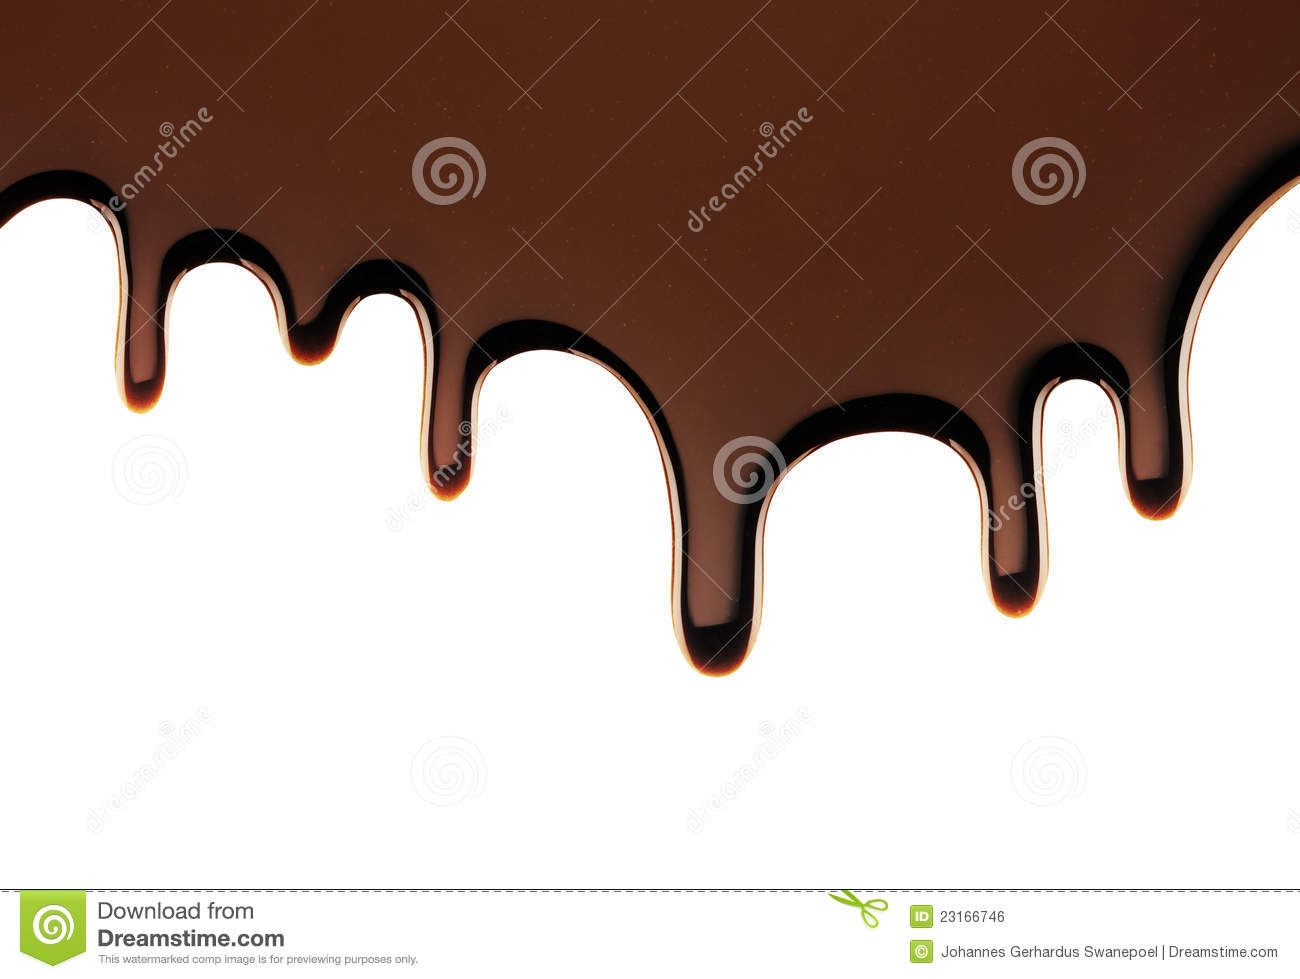 real chocolate dripping stock photo. image of ingredient - 23166746